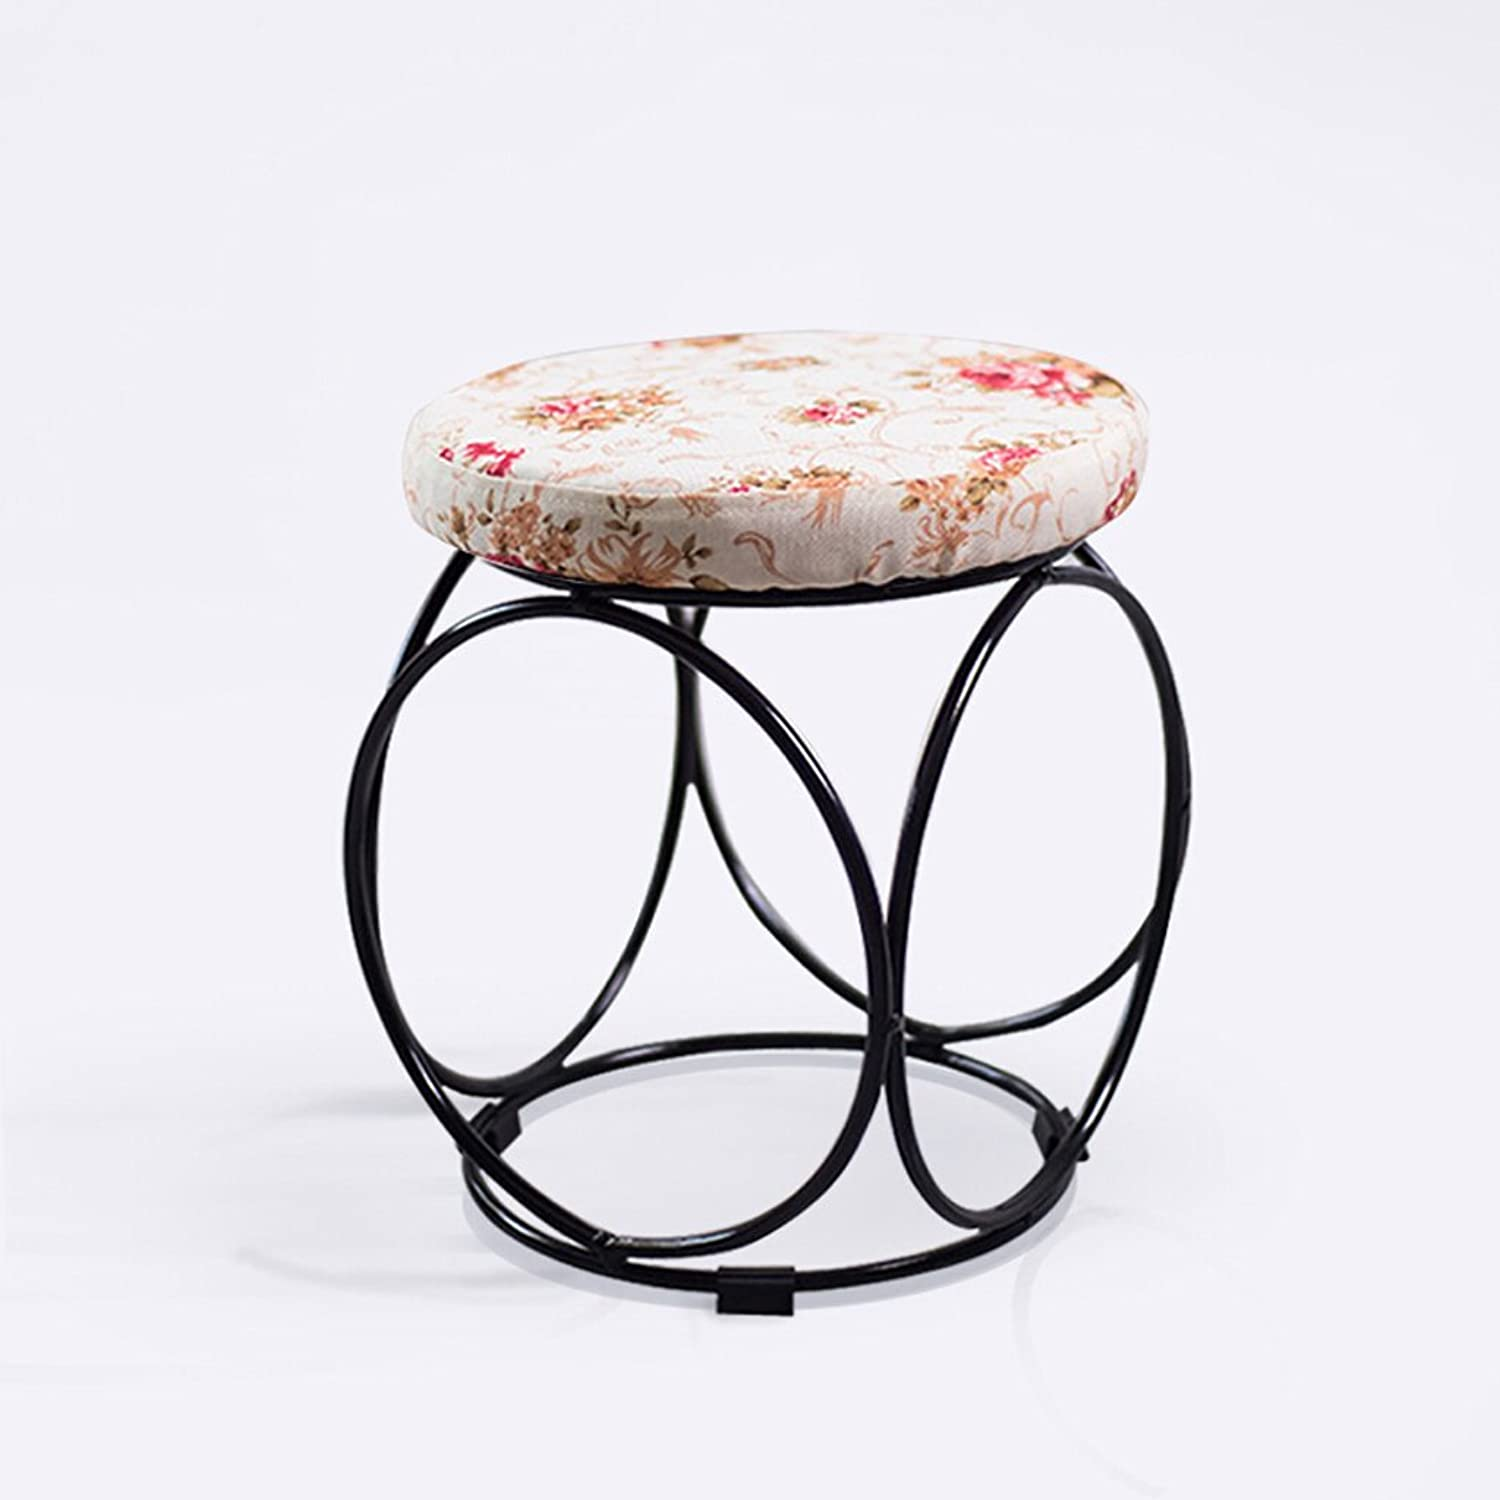 Creative Hollow Round Iron Stool, Fashion Linen Living Room Study Bedroom Home Sofa Makeup Footstool, 29  30cm